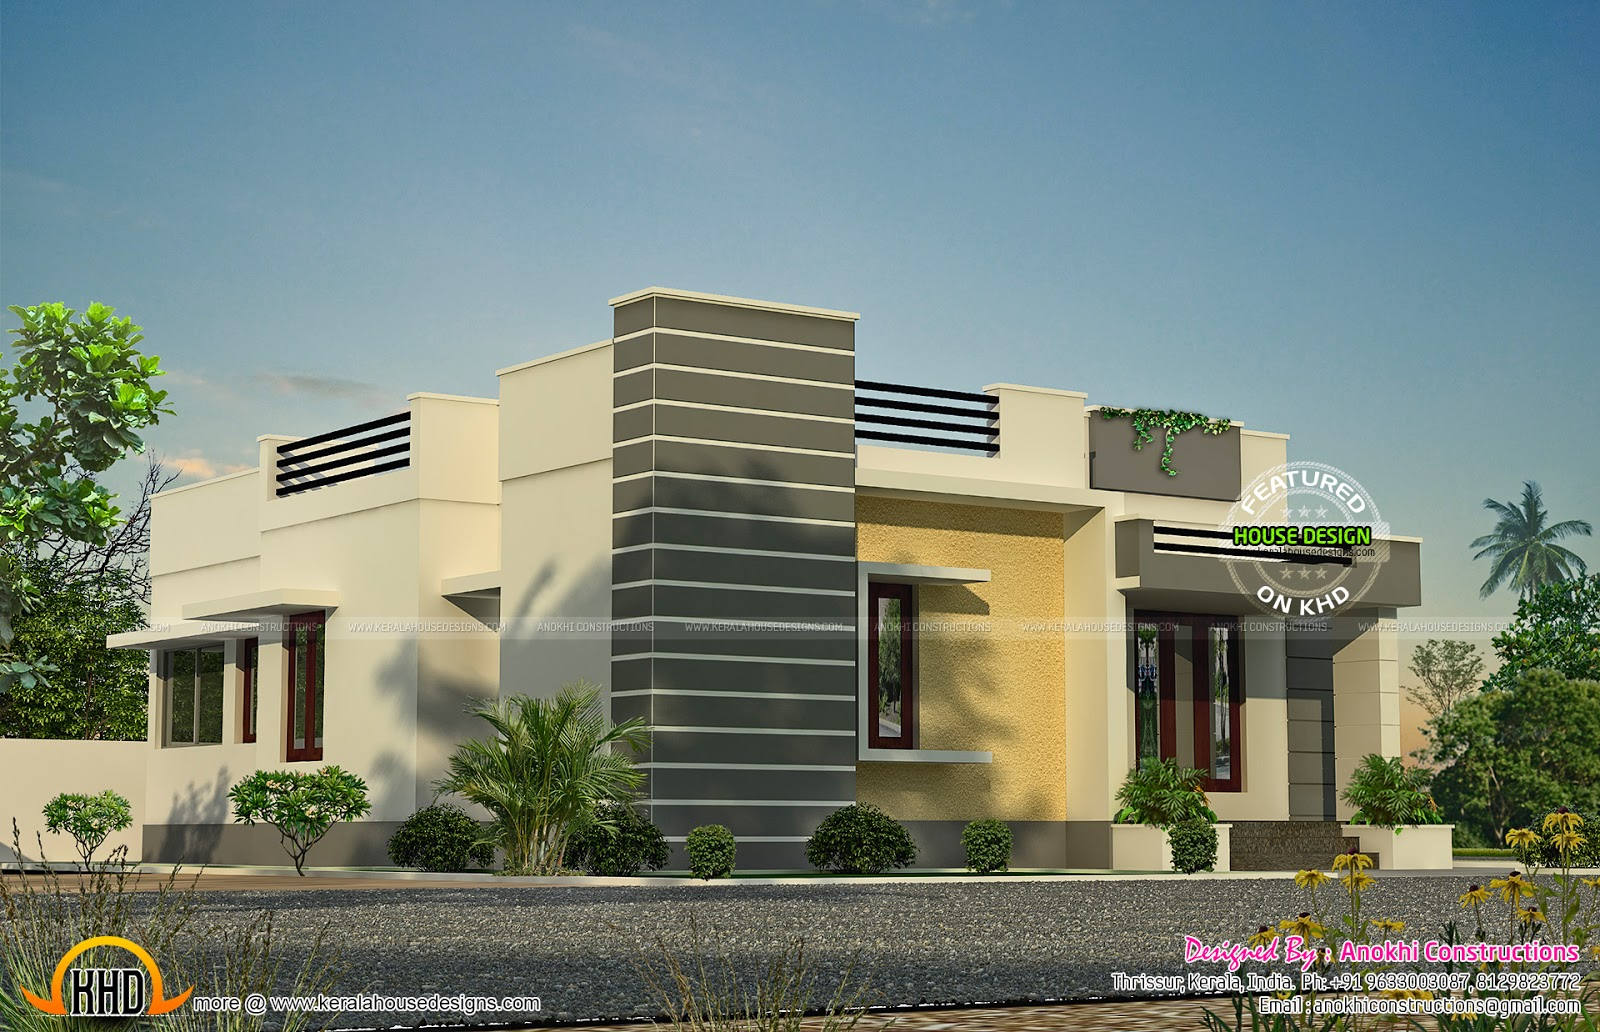 Space saving home design kerala home design and floor plans for The space scape architects thrissur kerala